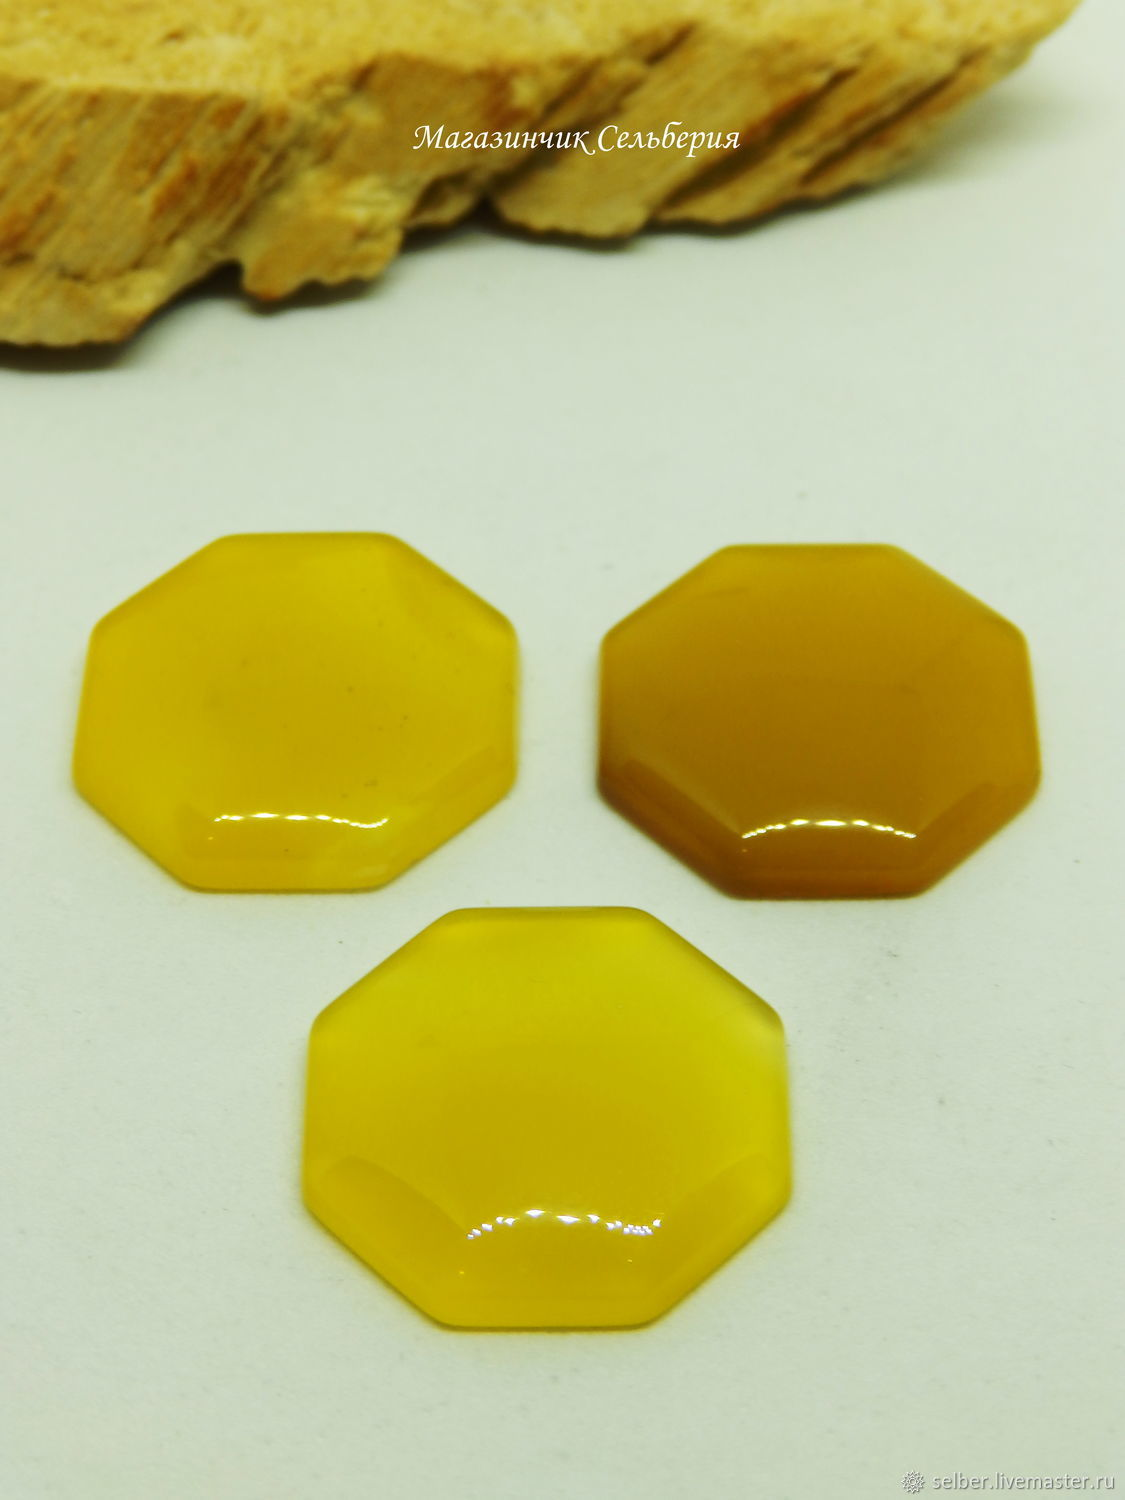 Cabochon yellow chalcedony hexagon 21h21 mm, Cabochons, Gatchina,  Фото №1